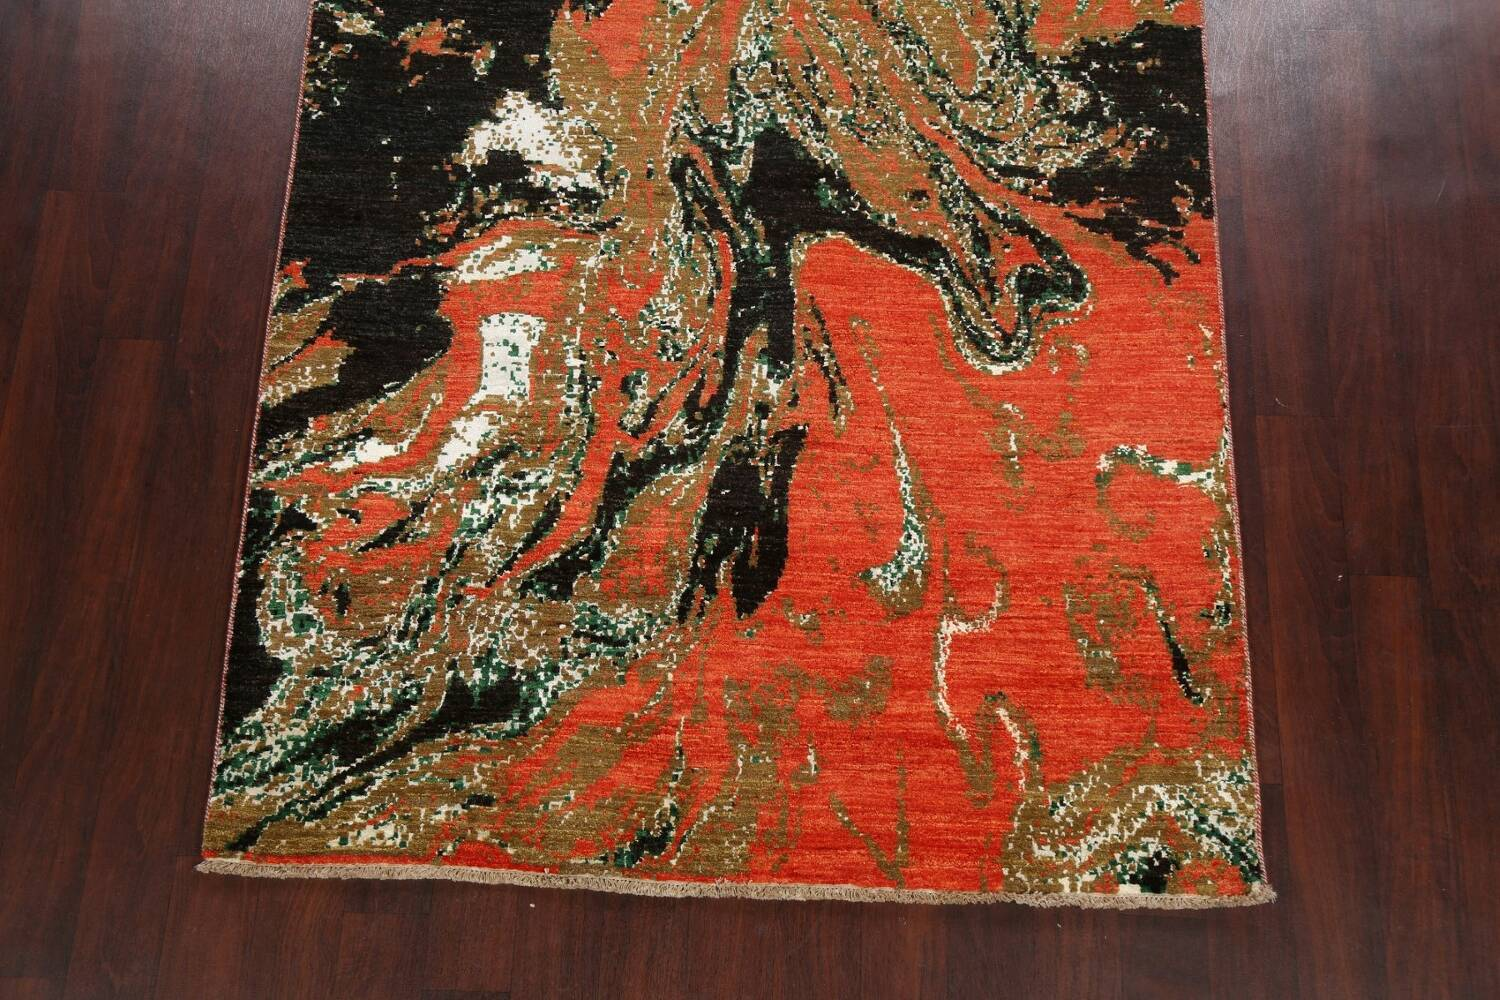 Artistic Modern Abstract Oriental Area Rug 5x8 image 8